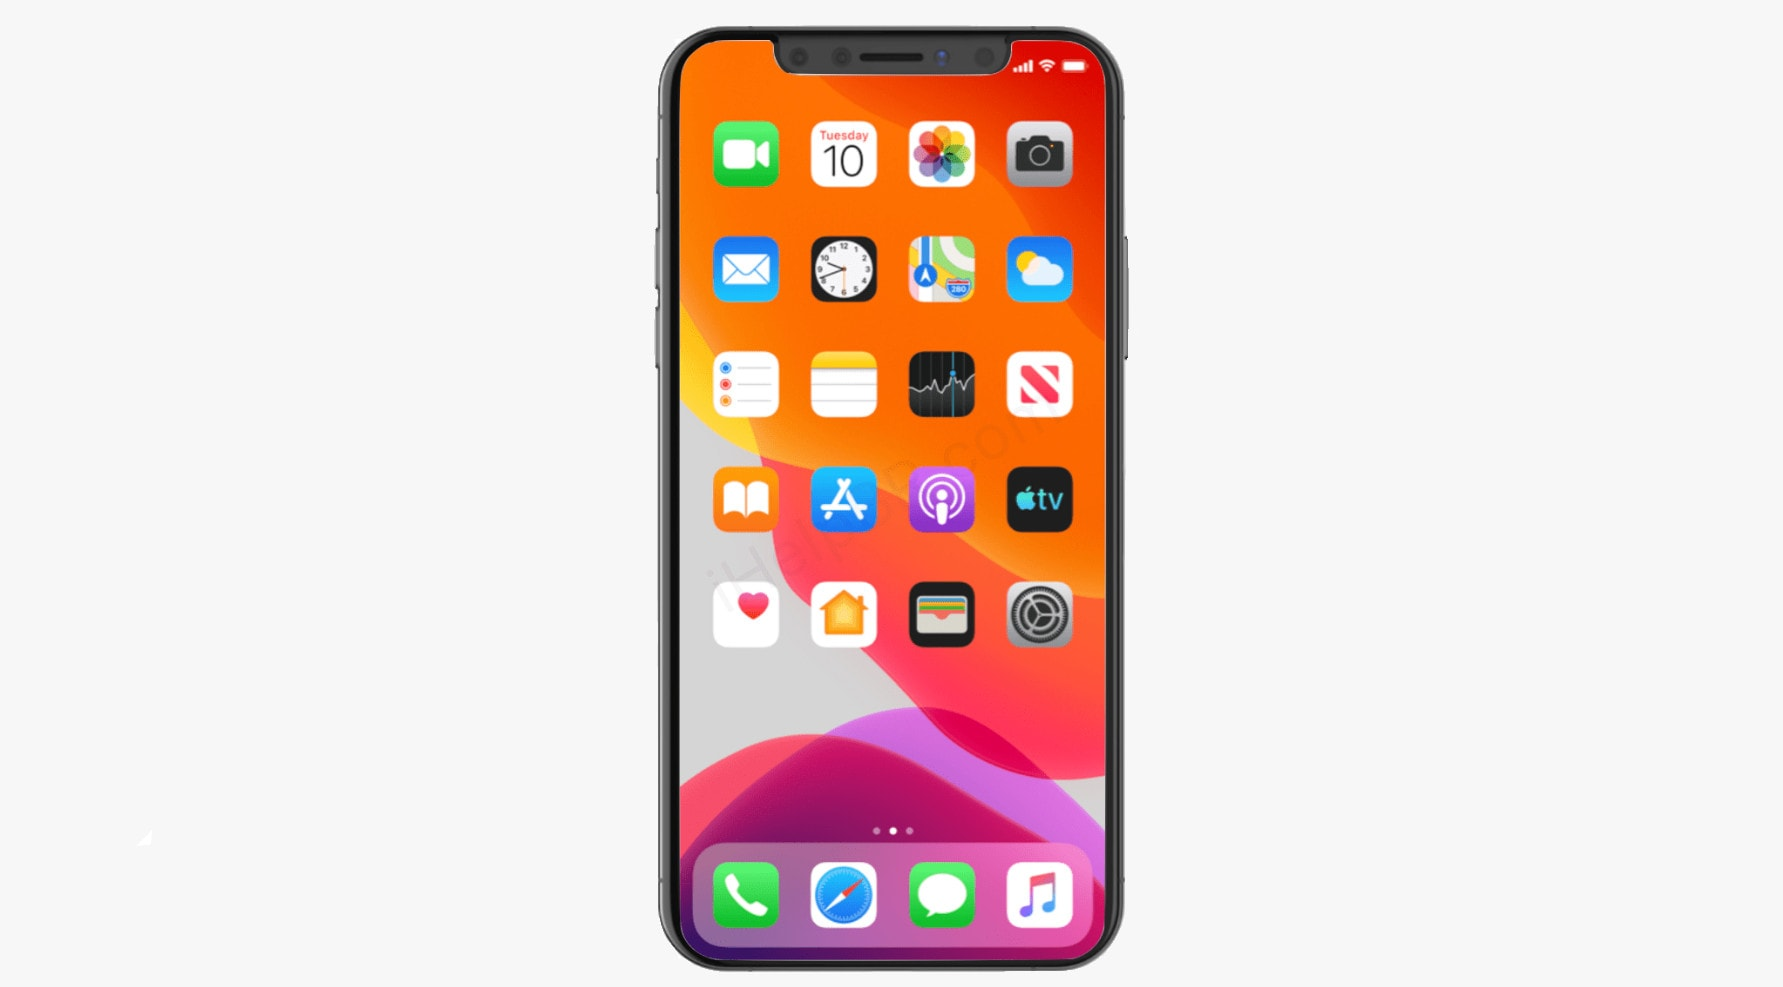 iOS 13 on an iPhone XS